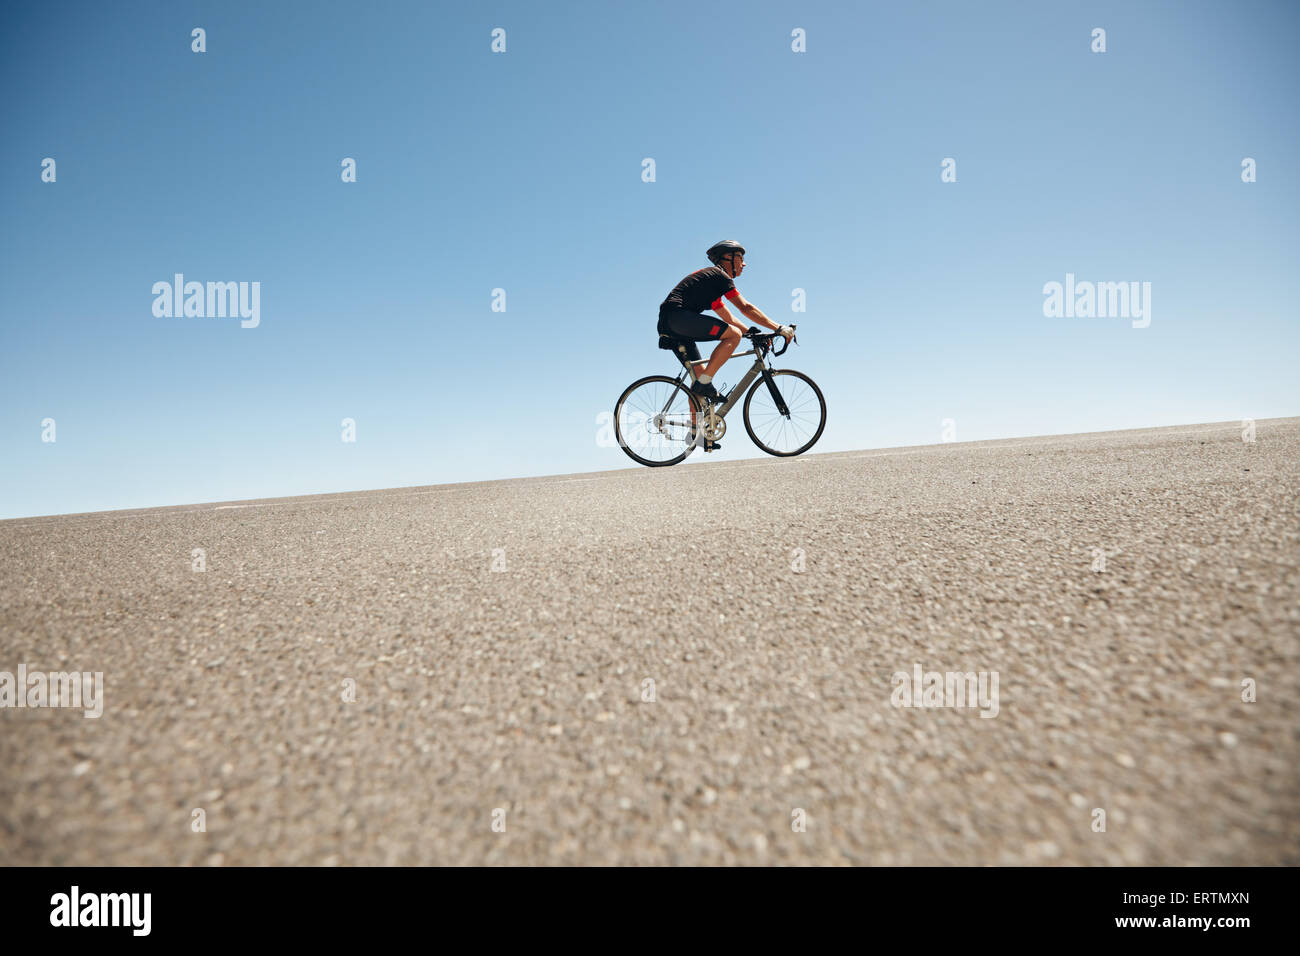 Low angle image of a male cyclist riding on a flat road against blue sky. Man cycling up hill on open road. - Stock Image